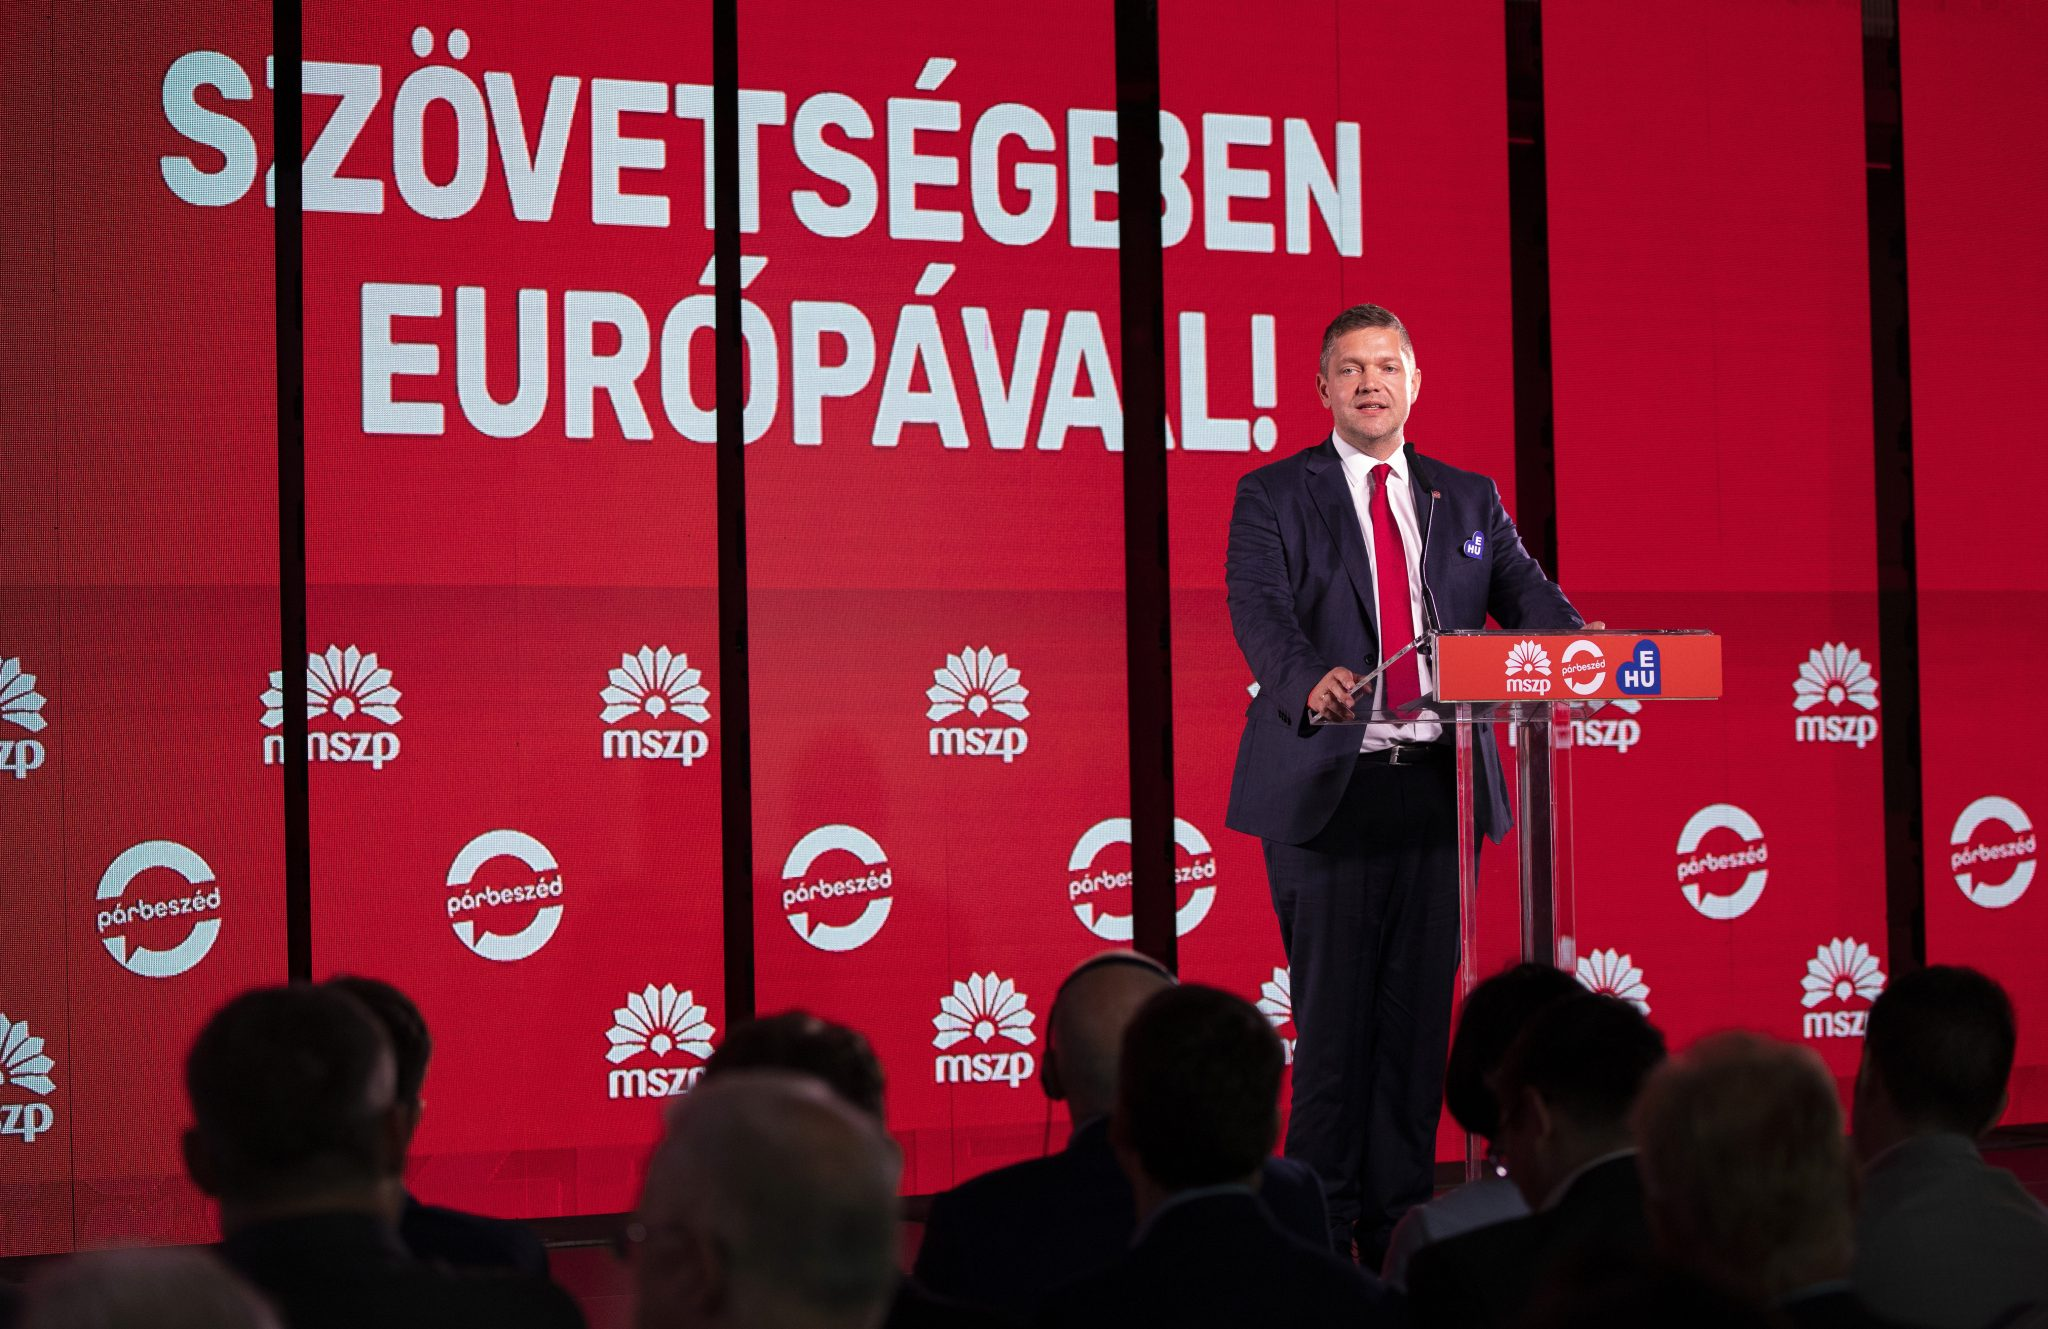 Socialists: Stopping Populists Who 'Betray Their Country' at Stake post's picture